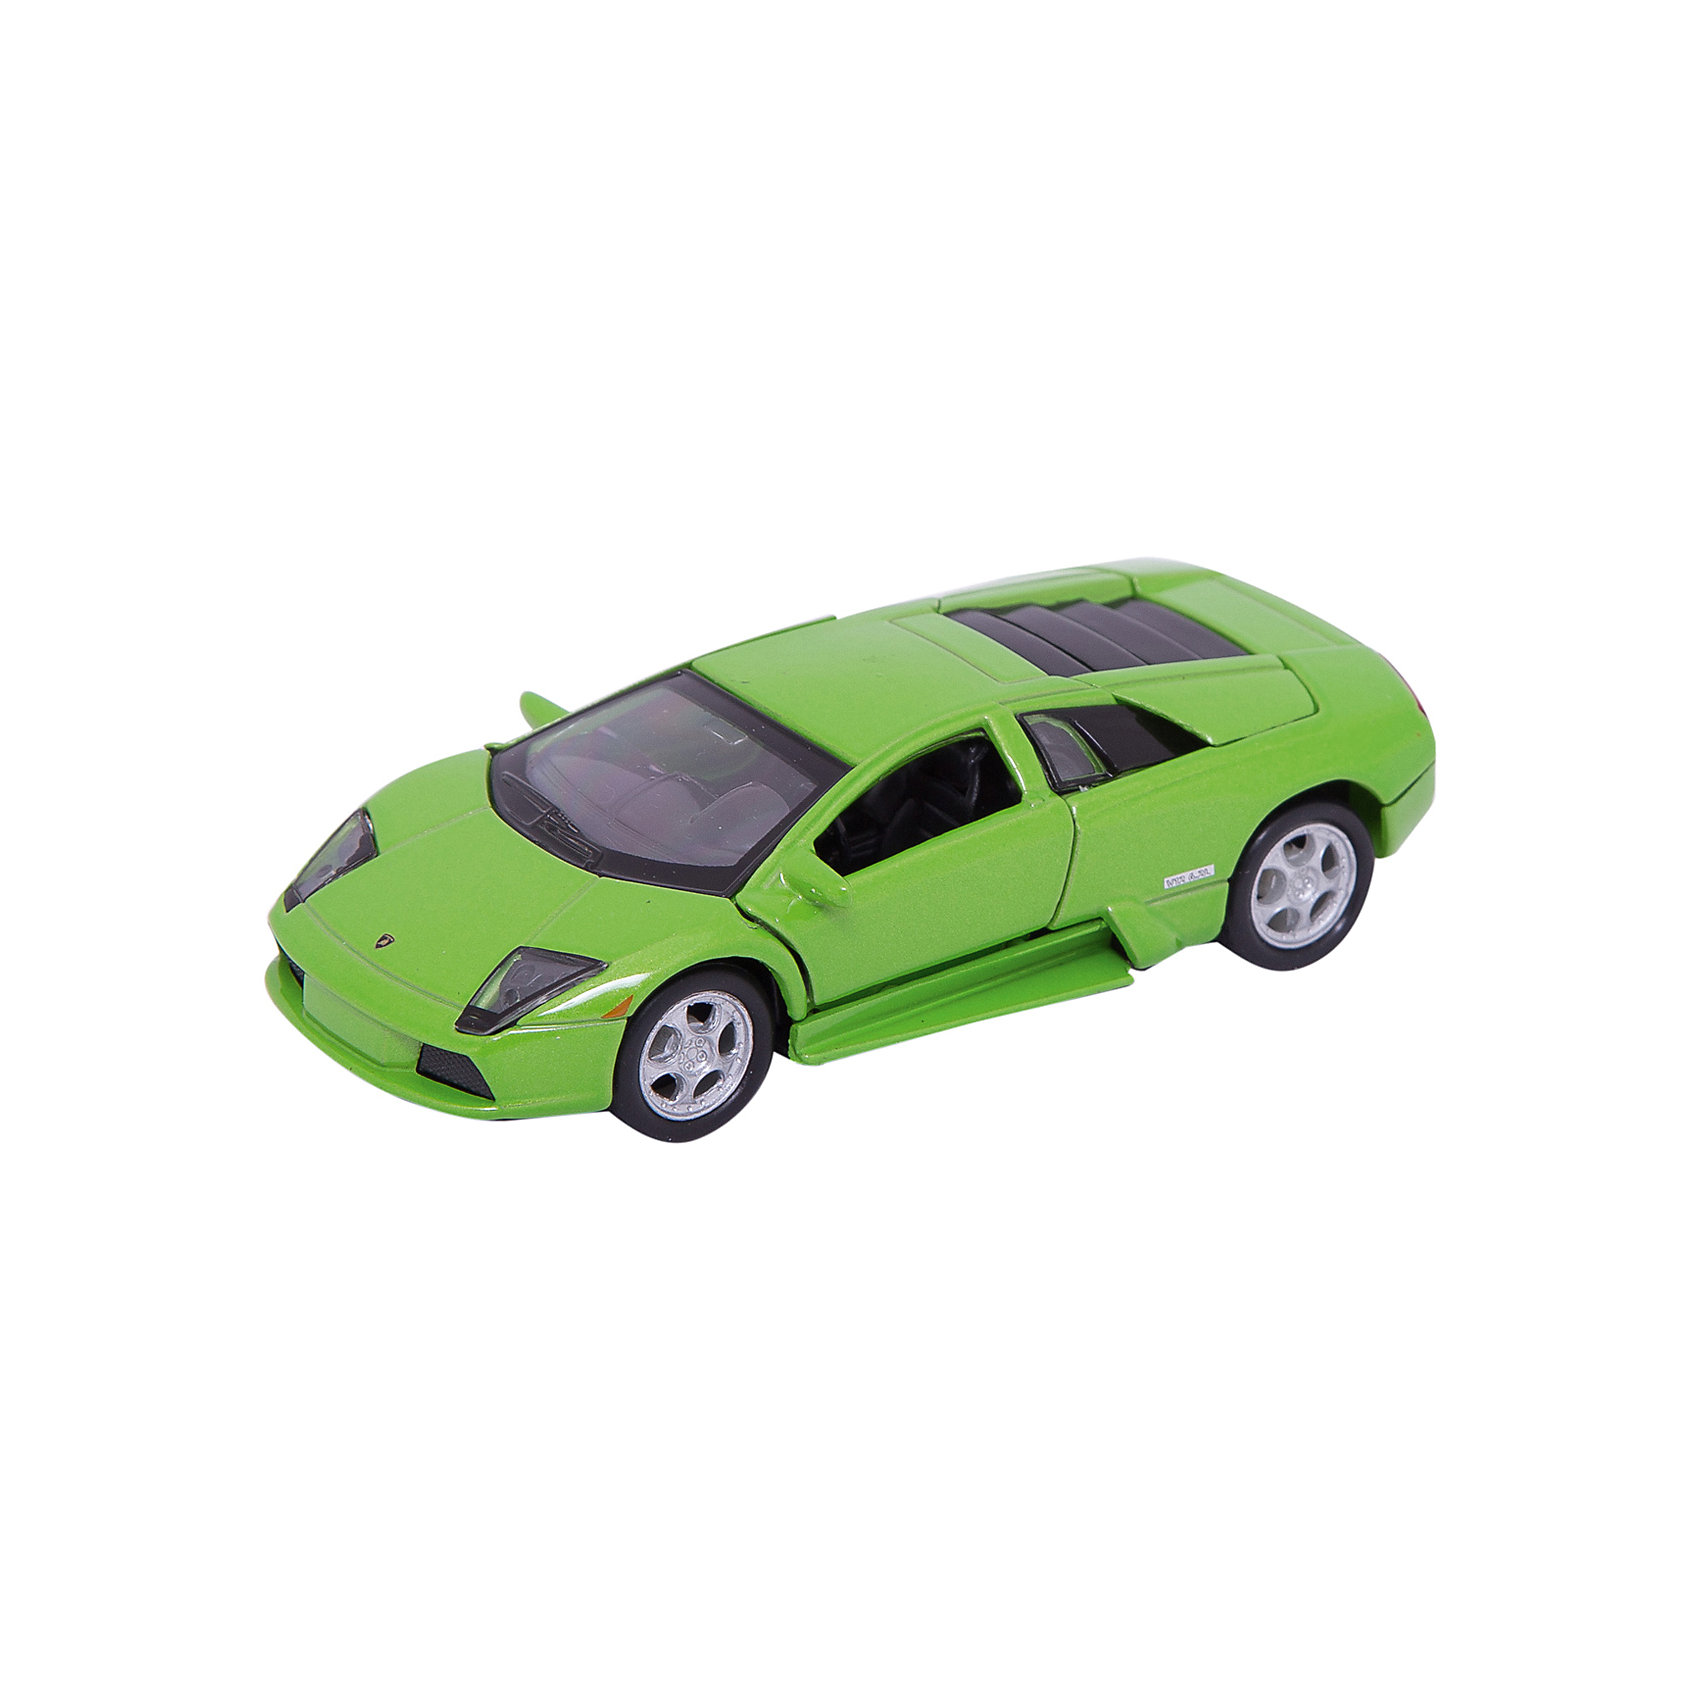 Welly Модель машины 1:34-39 LAMBORGHINI MURCIELAGO., Welly автомобиль welly nissan gtr 1 34 39 белый 43632